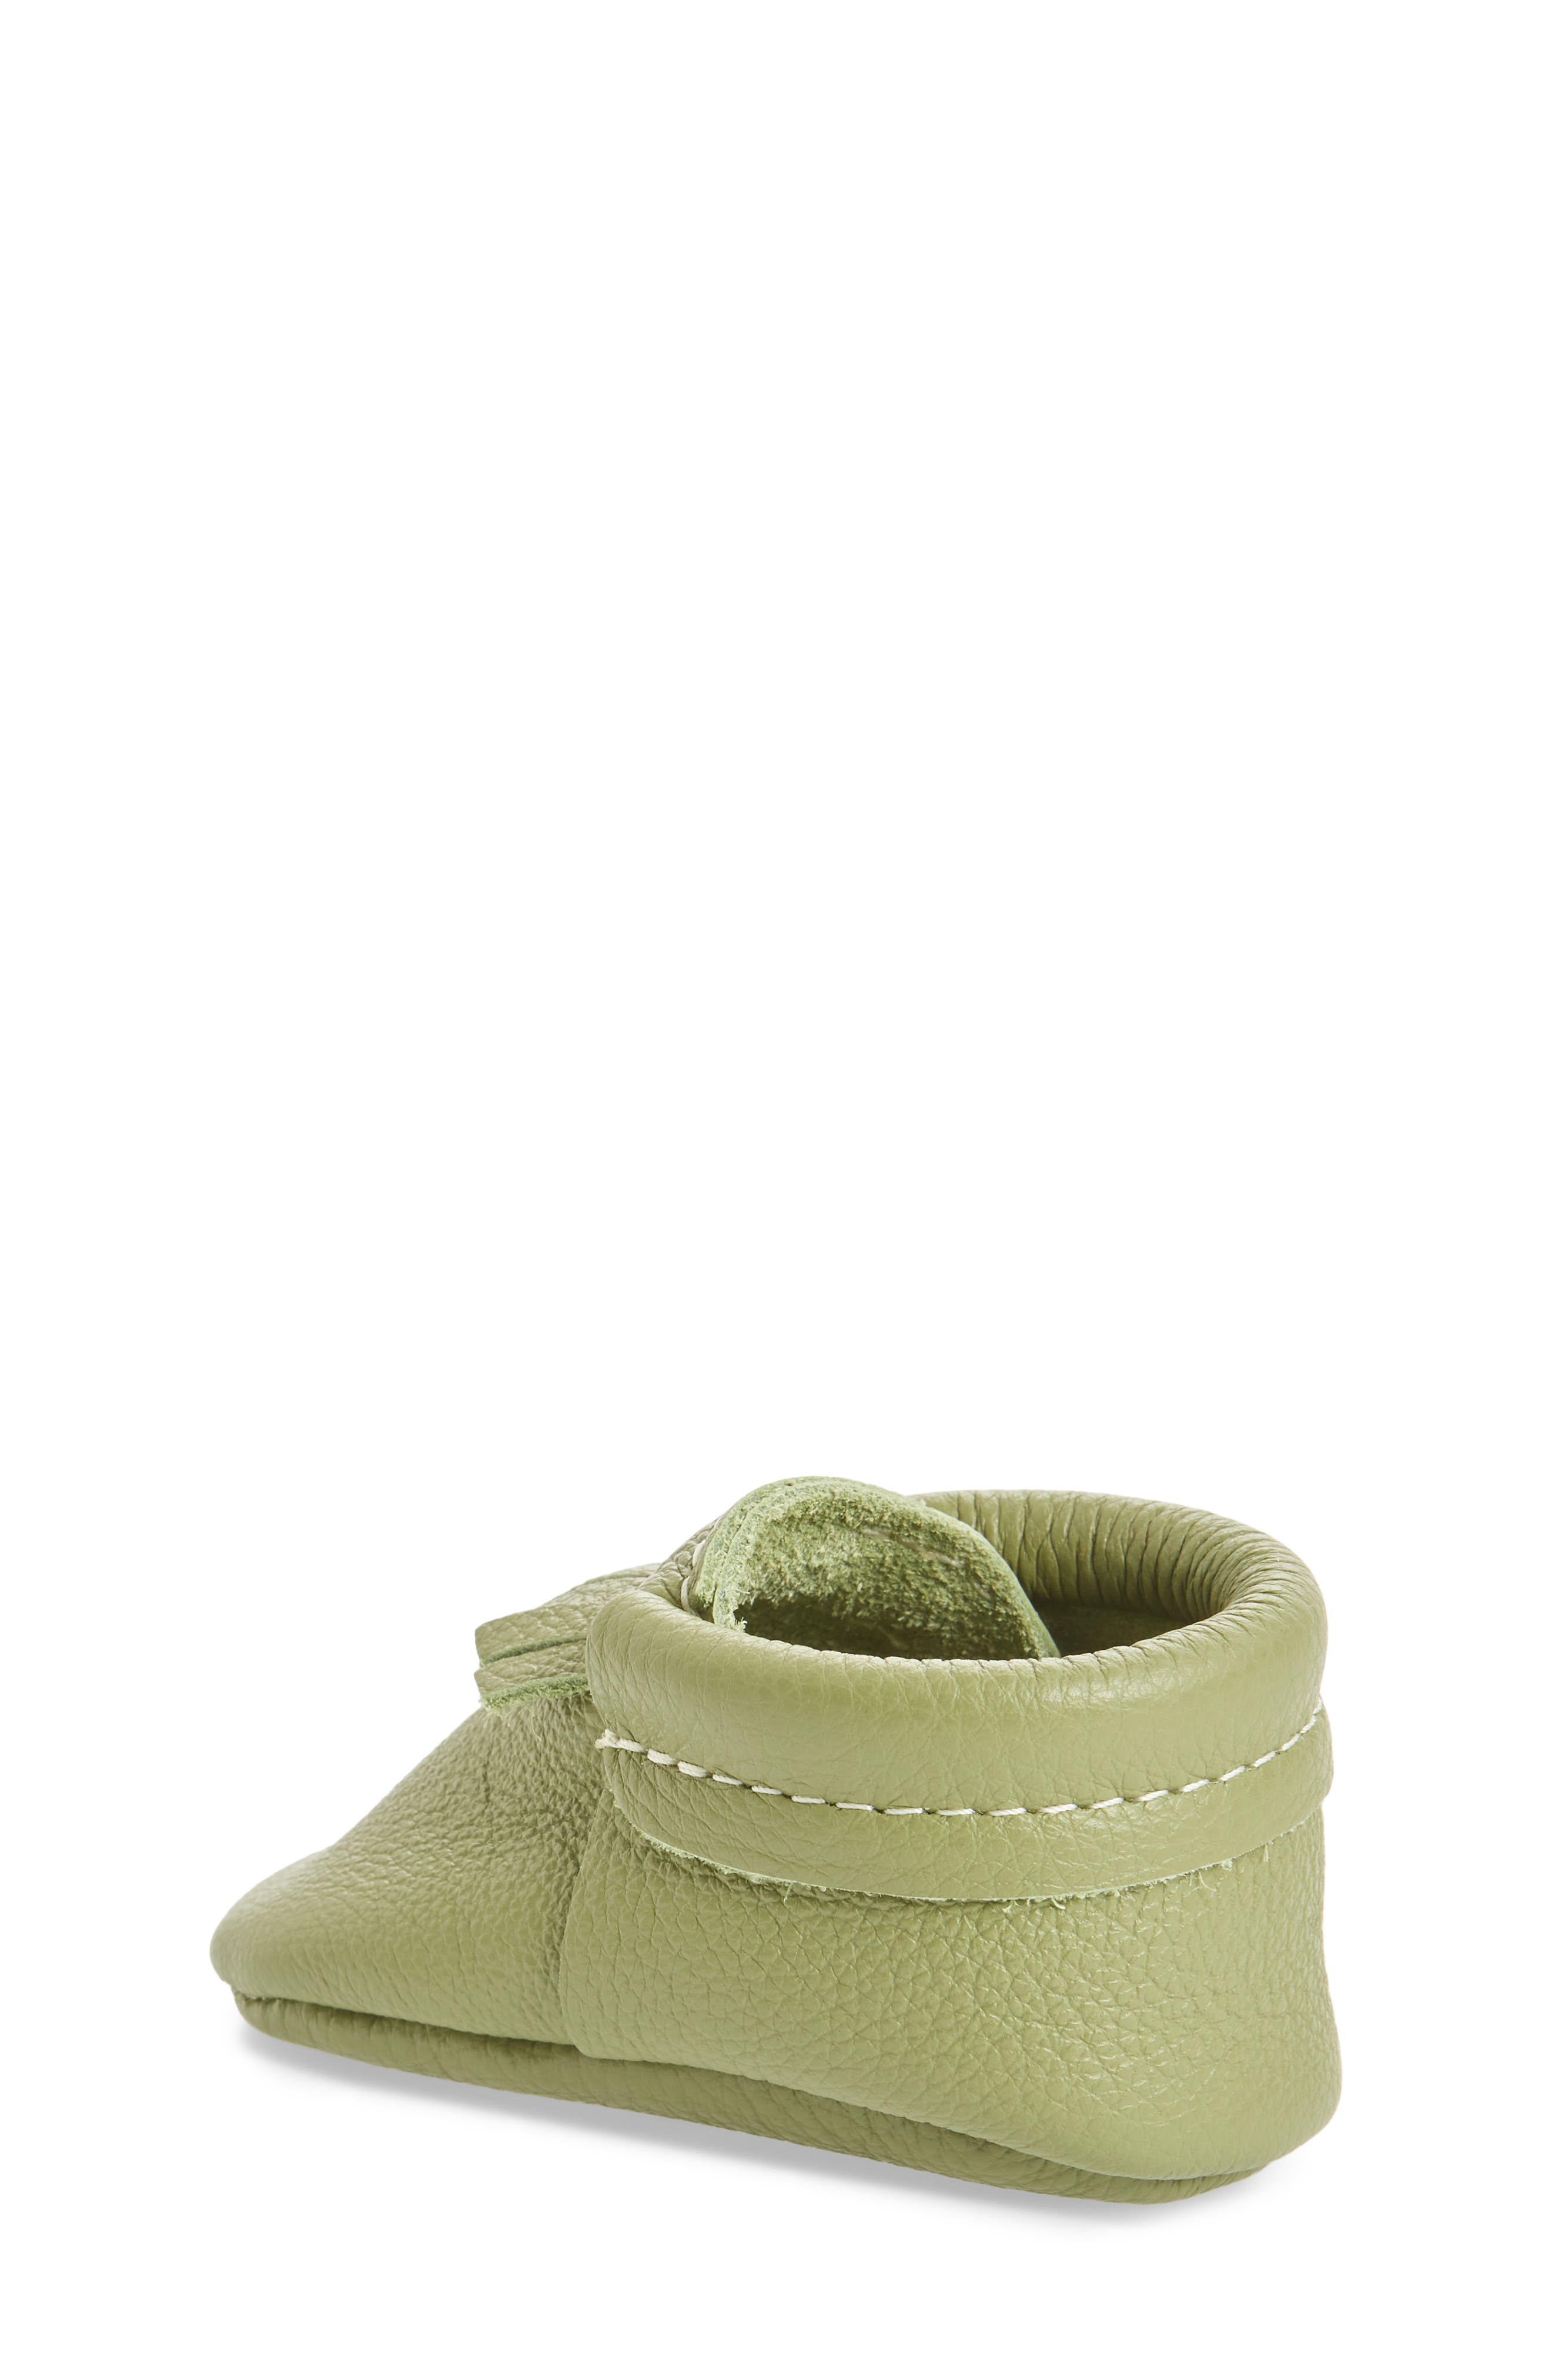 Leather Moccasin,                             Alternate thumbnail 2, color,                             GREEN LEATHER